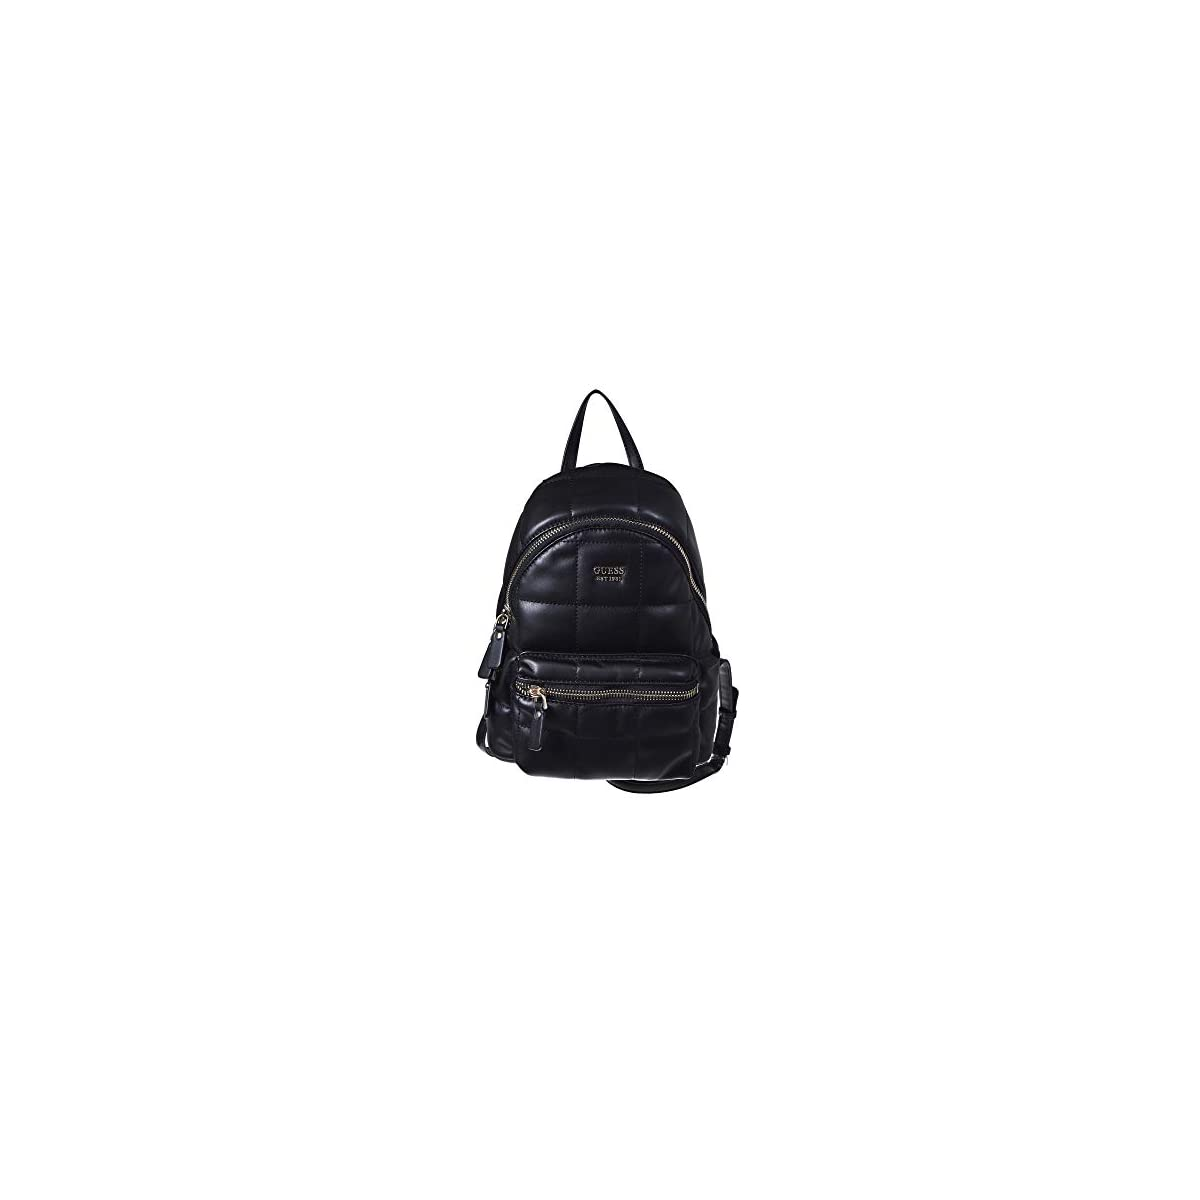 41HtIanZZOL. SS1200  - Guess Urban Sport Sml Leeza Backpack - Mochilas Mujer